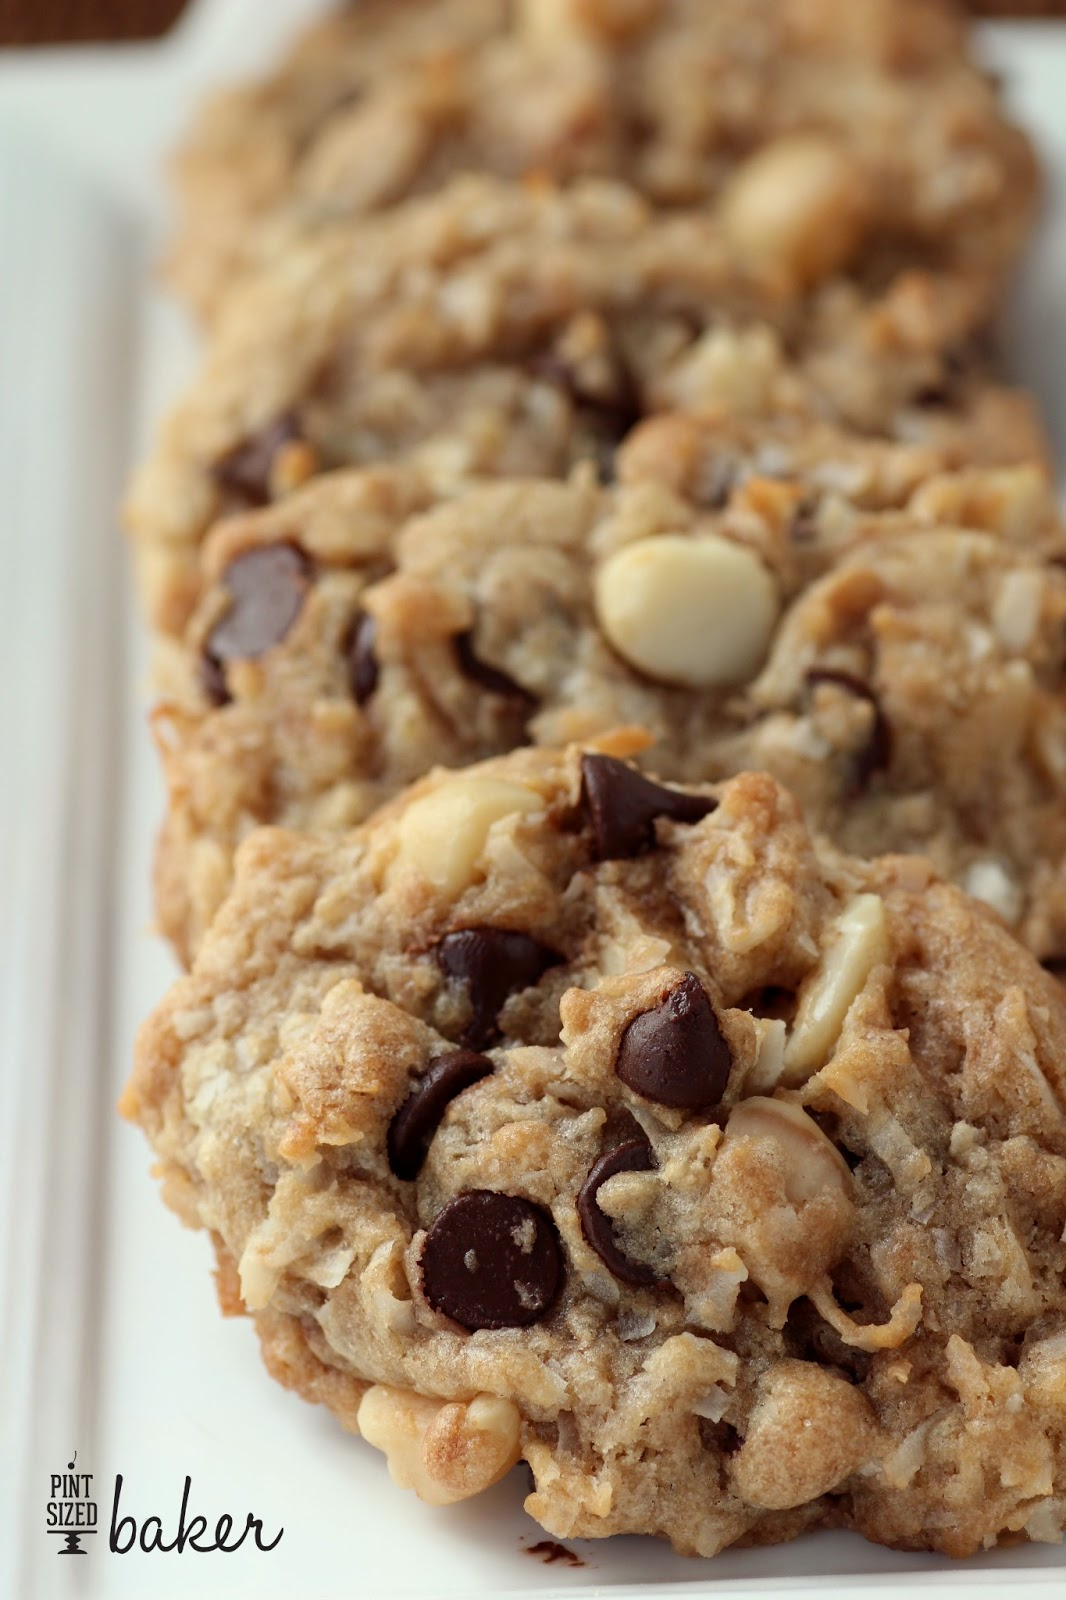 Macadamia Nut Chocolate Chip Cookies with Coconut - Pint Sized Baker